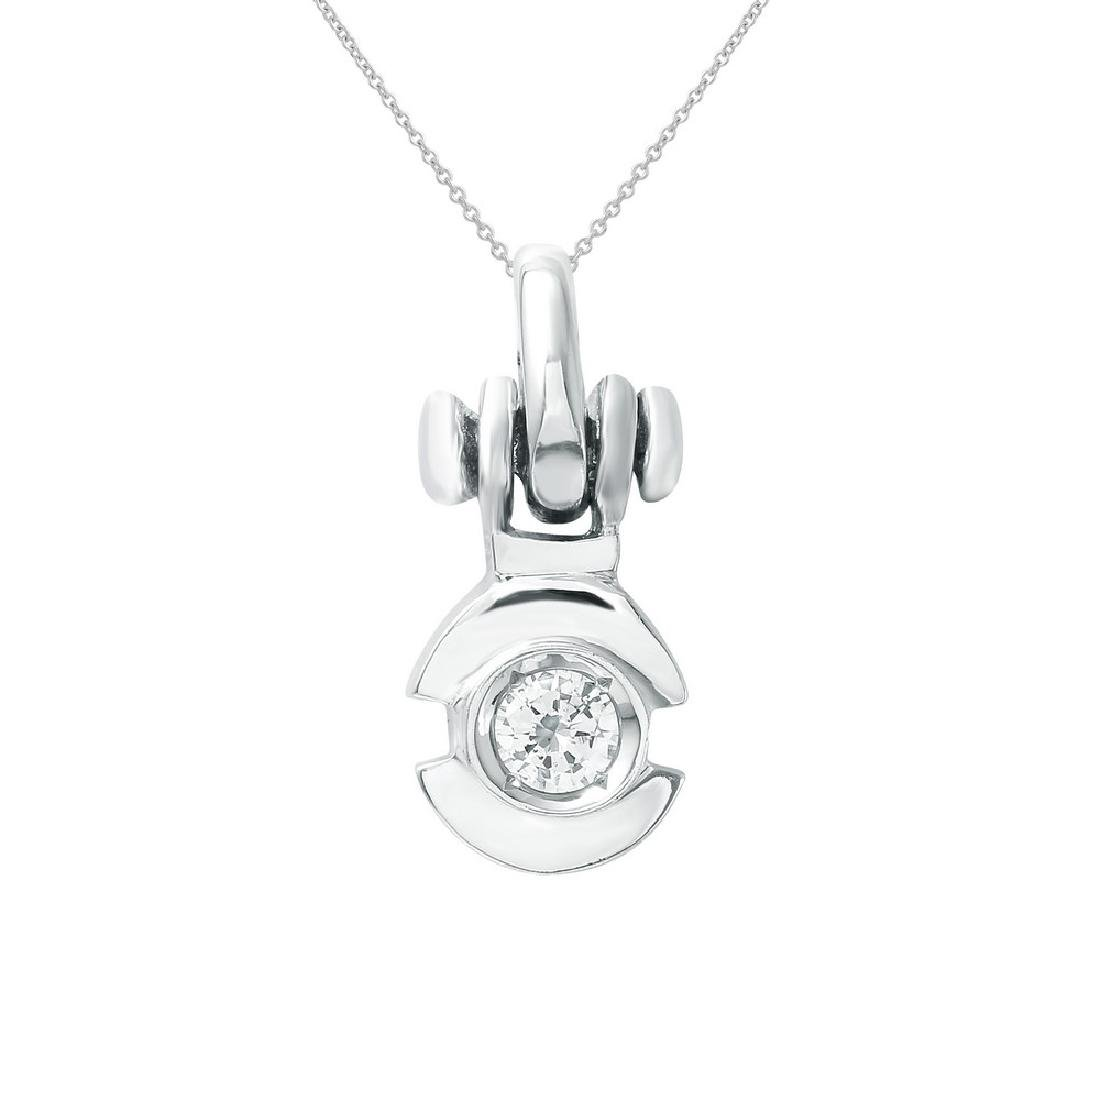 Genuine 0.19 TCW 18K White Gold Ladies Pendant